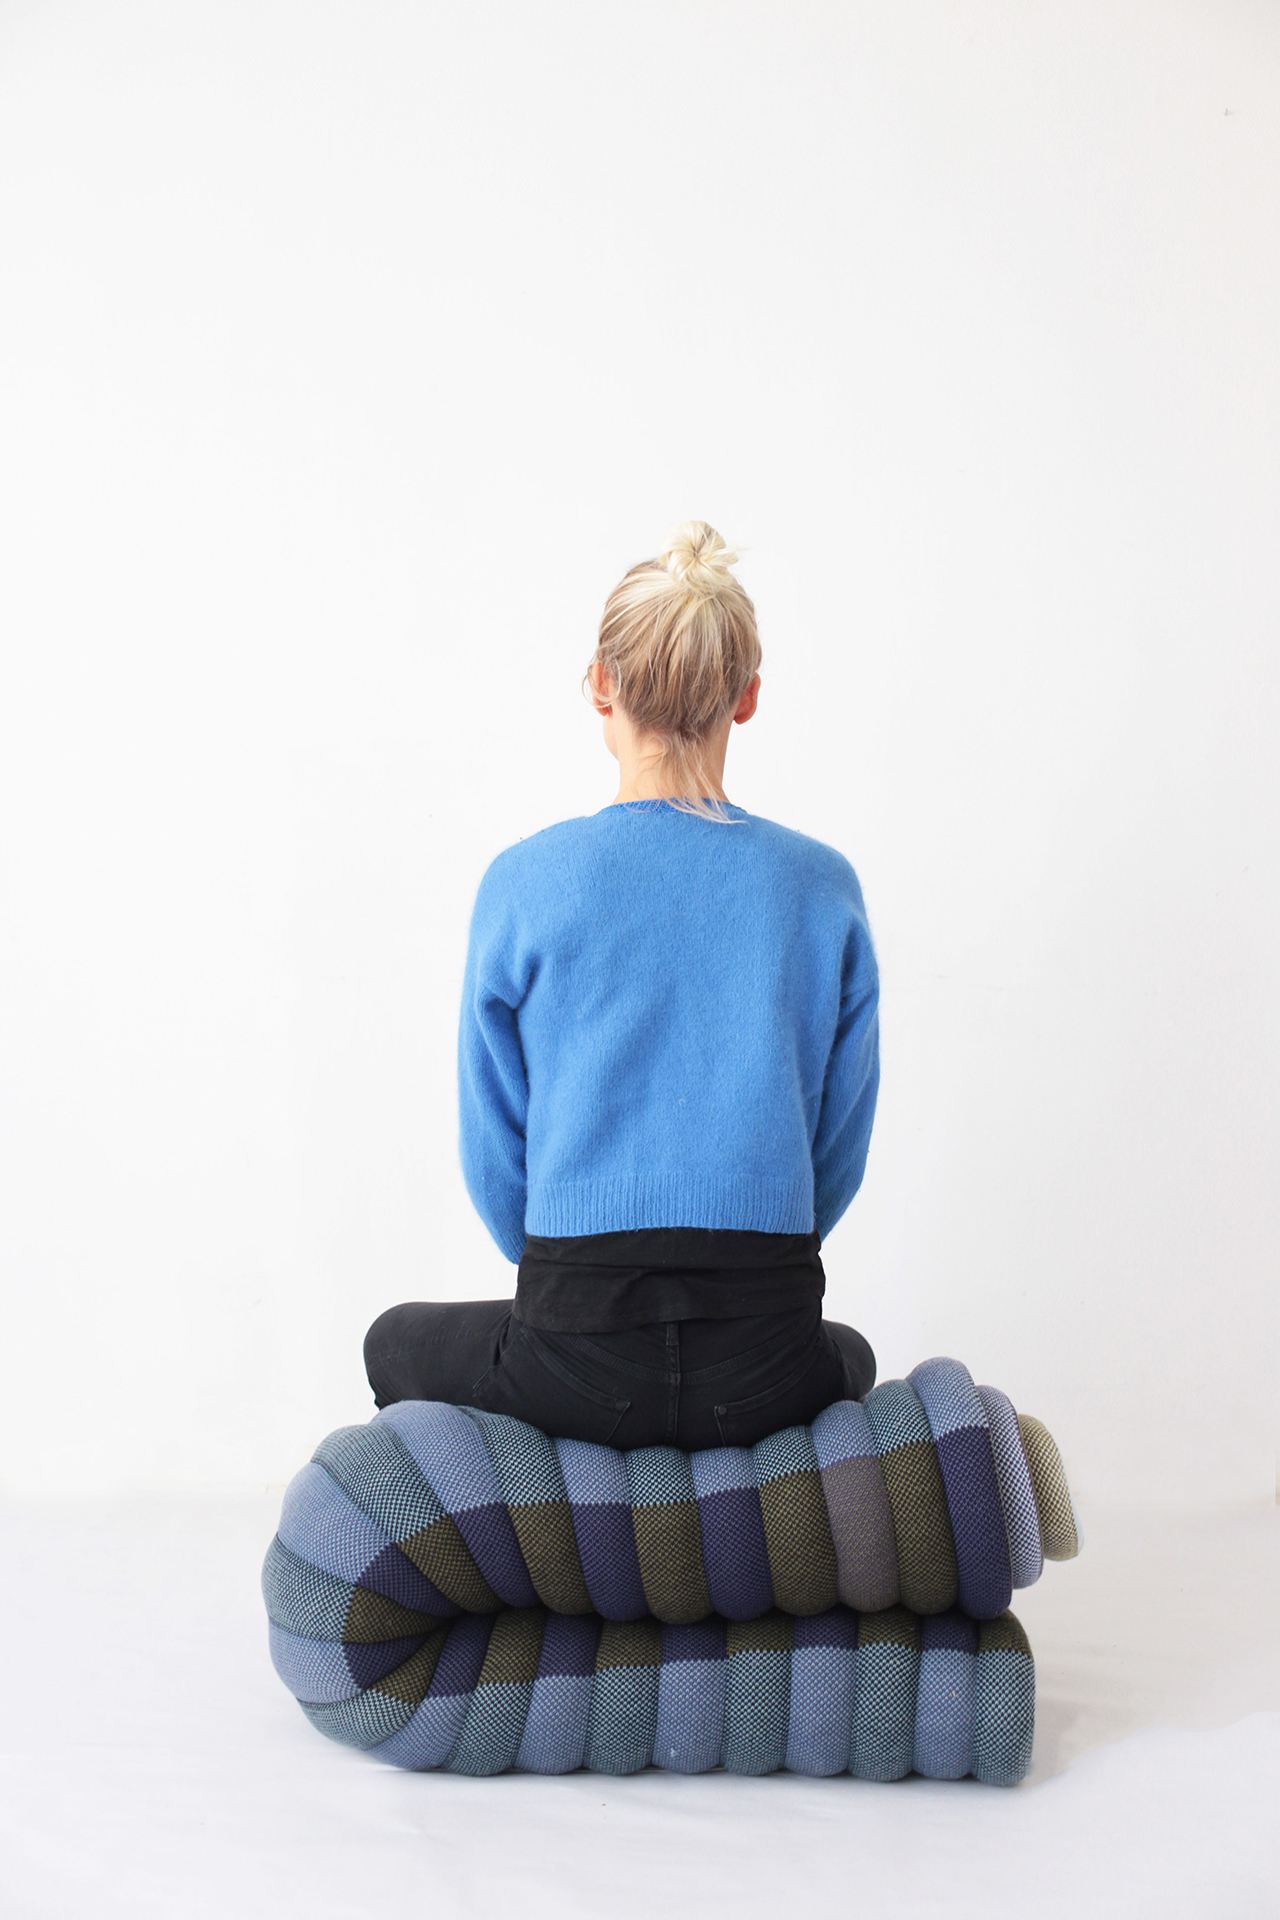 Oruga  is a module of 150 x 200 cm, constructed with filled bands, all knitted. It forms rhythmic combination of colours and uneven lines. It can be reshaped to seat, sleep, read, cover up or lie down. It's made to adapt actively to your body and find any kind of comfort on the floor with a warming touch. Made in Belgium.